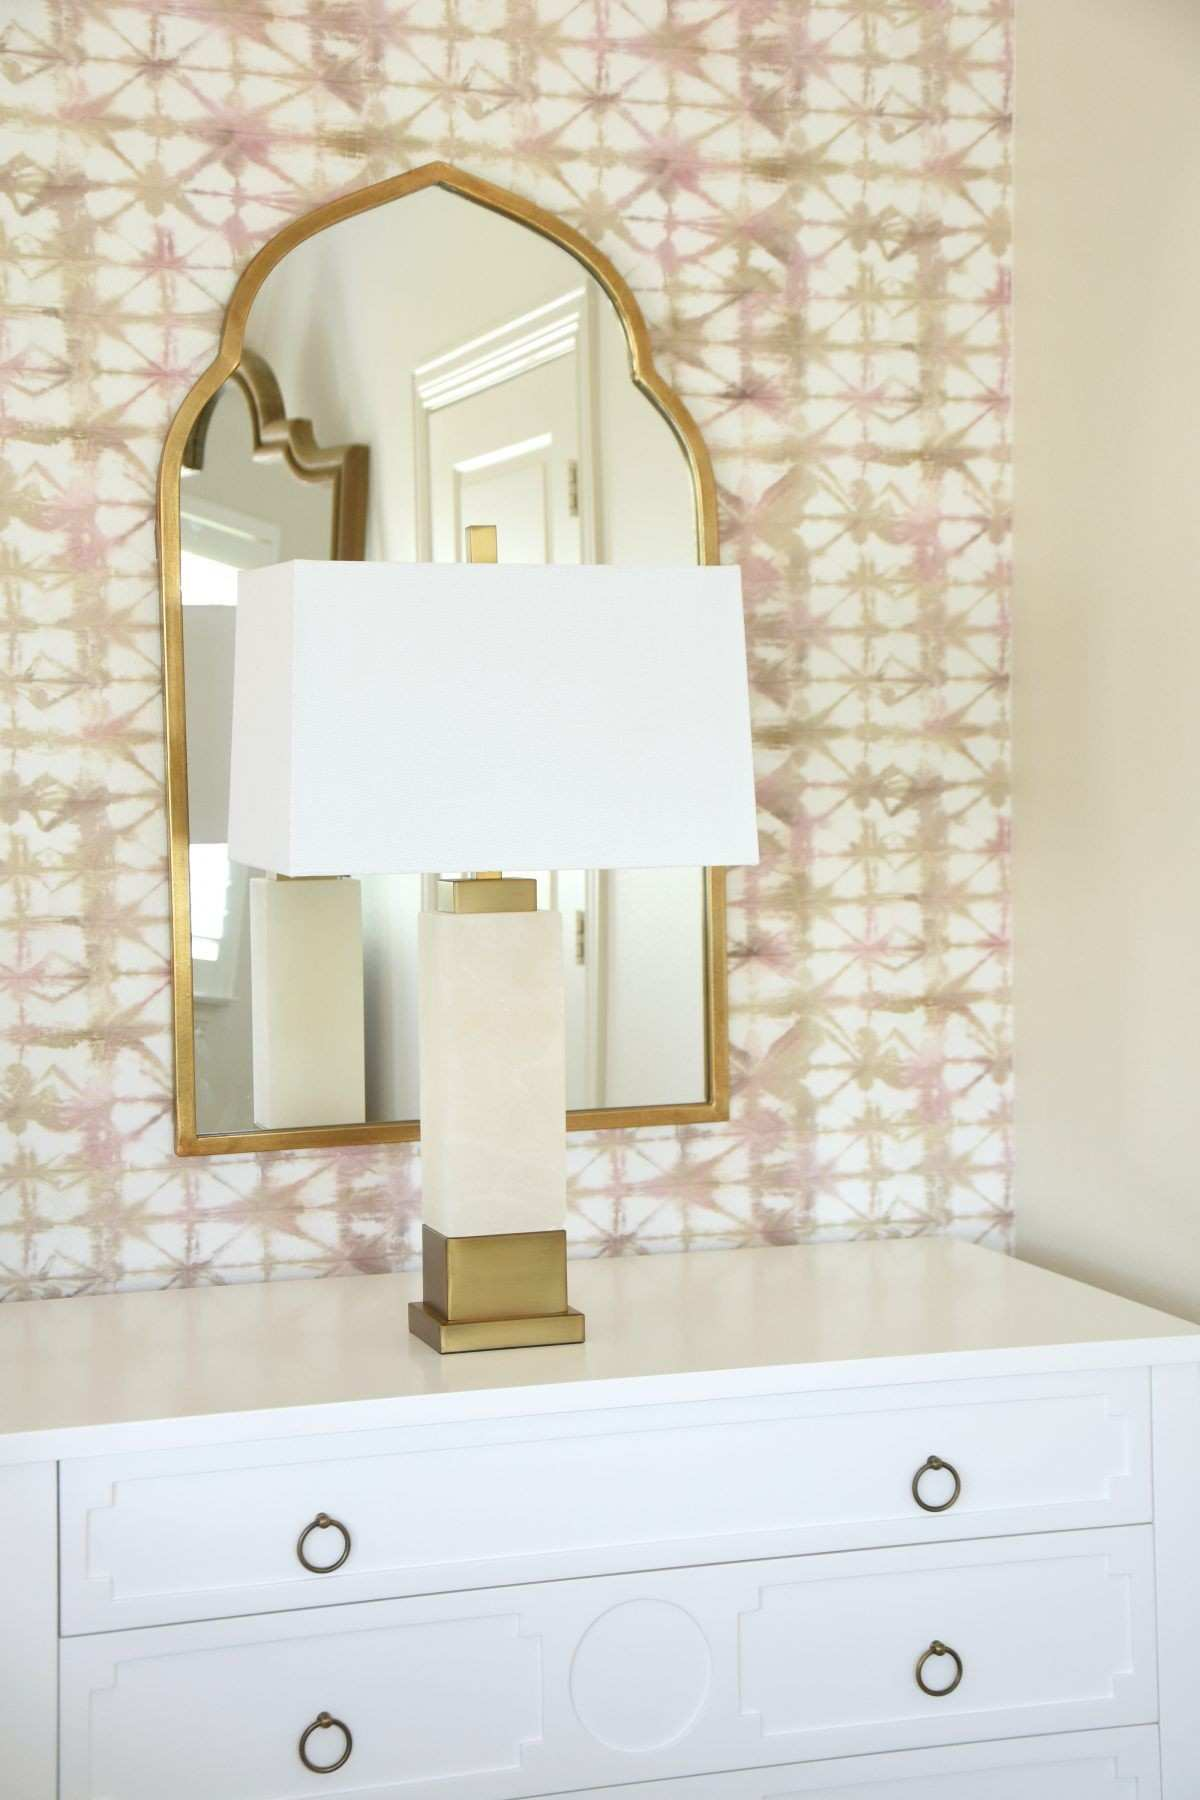 Arch Mirror Awesome Adorable Arched Bathroom Mirror with Distressed ...